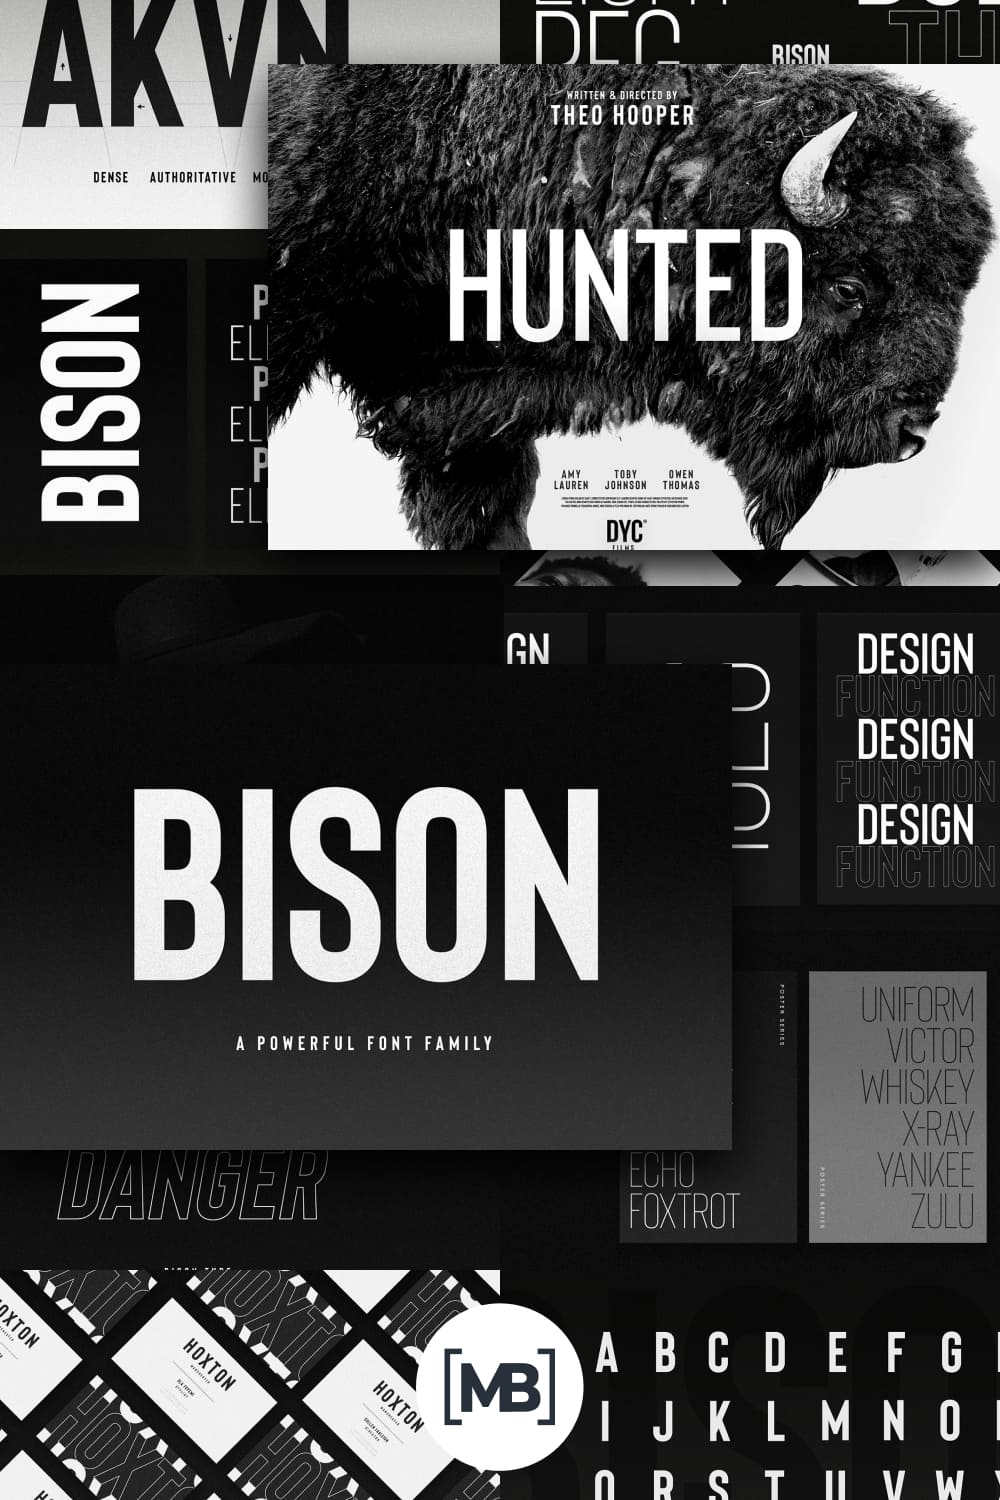 This is a strong font family and sophisticated sans serif.